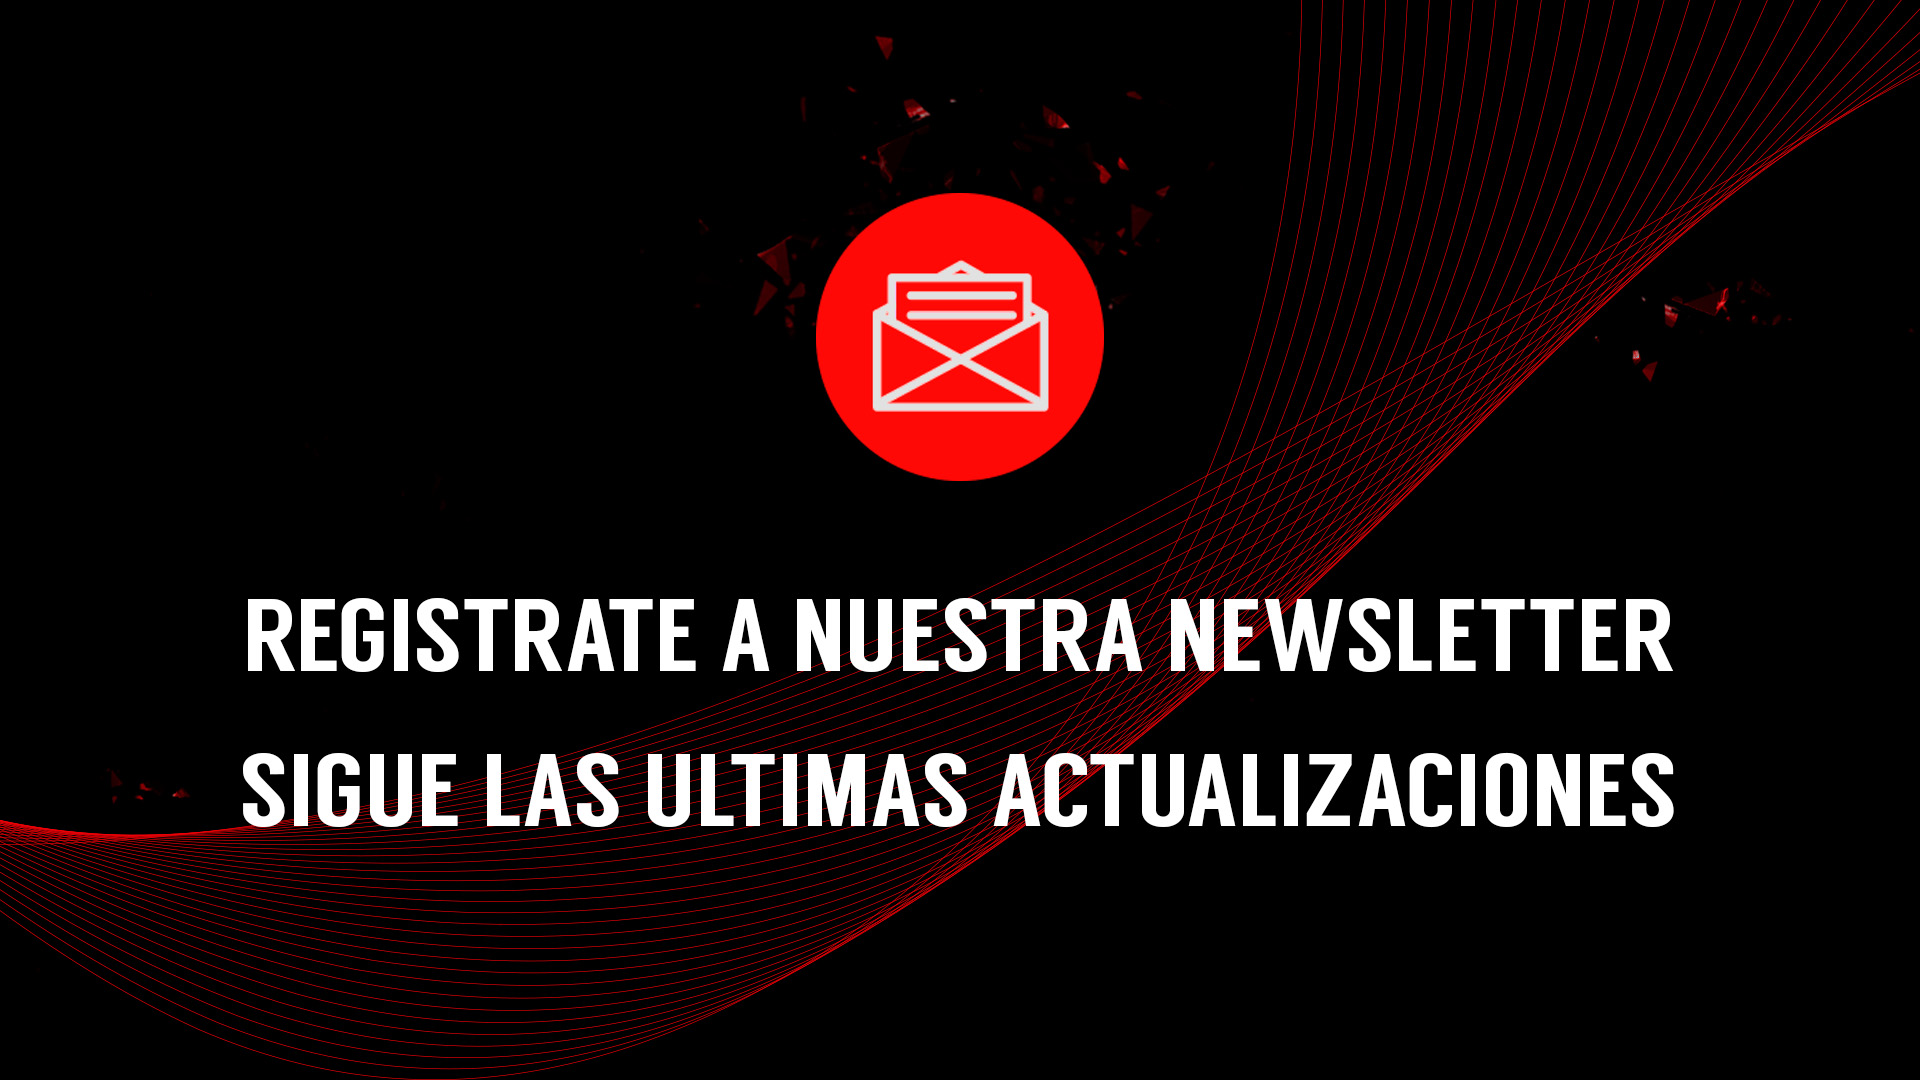 Registrate a nuestra newsletter Pro5 controller for PS4 - Playstation 4